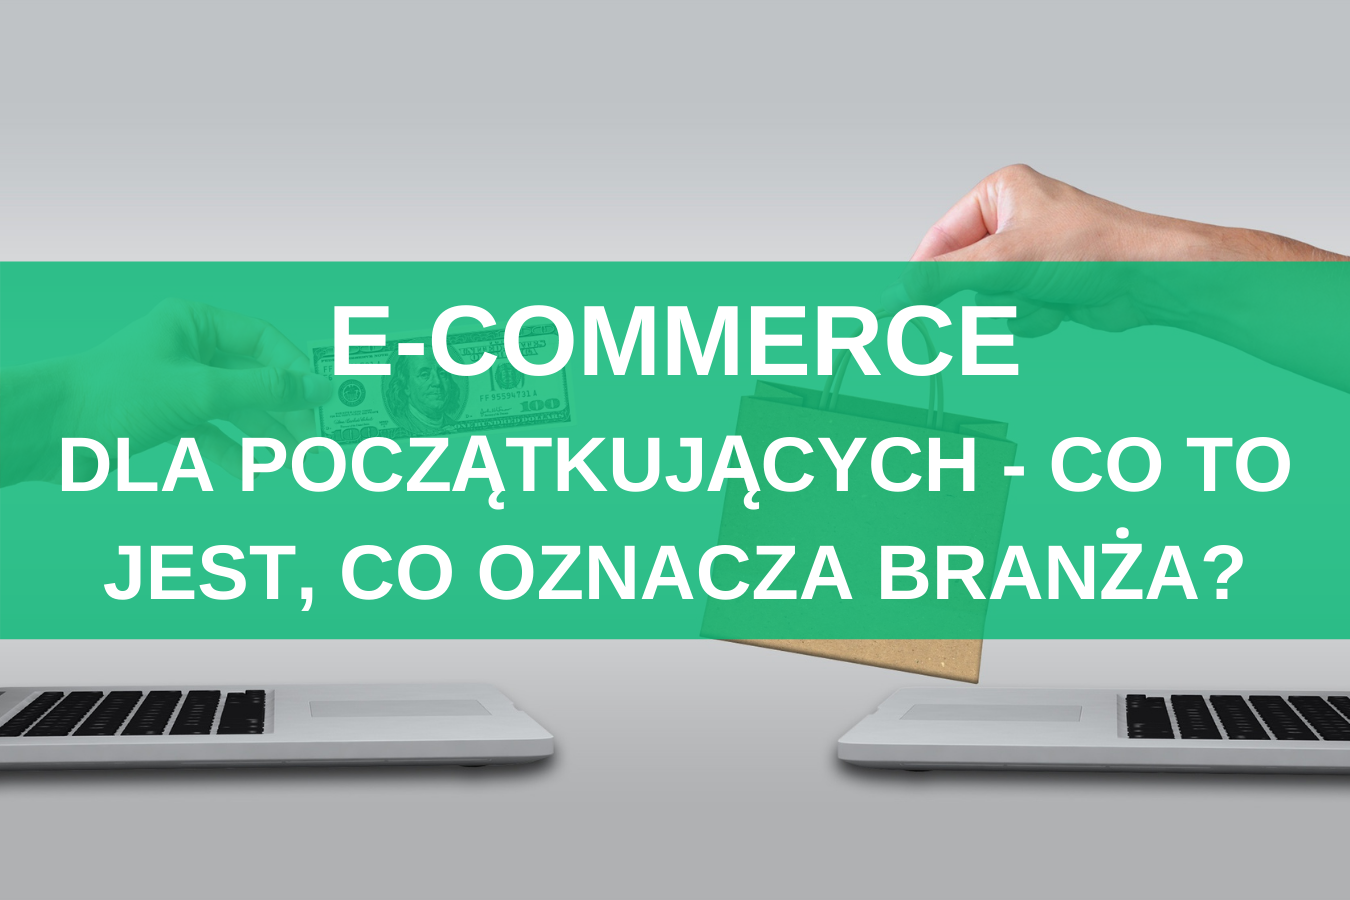 e-commerce co to jest